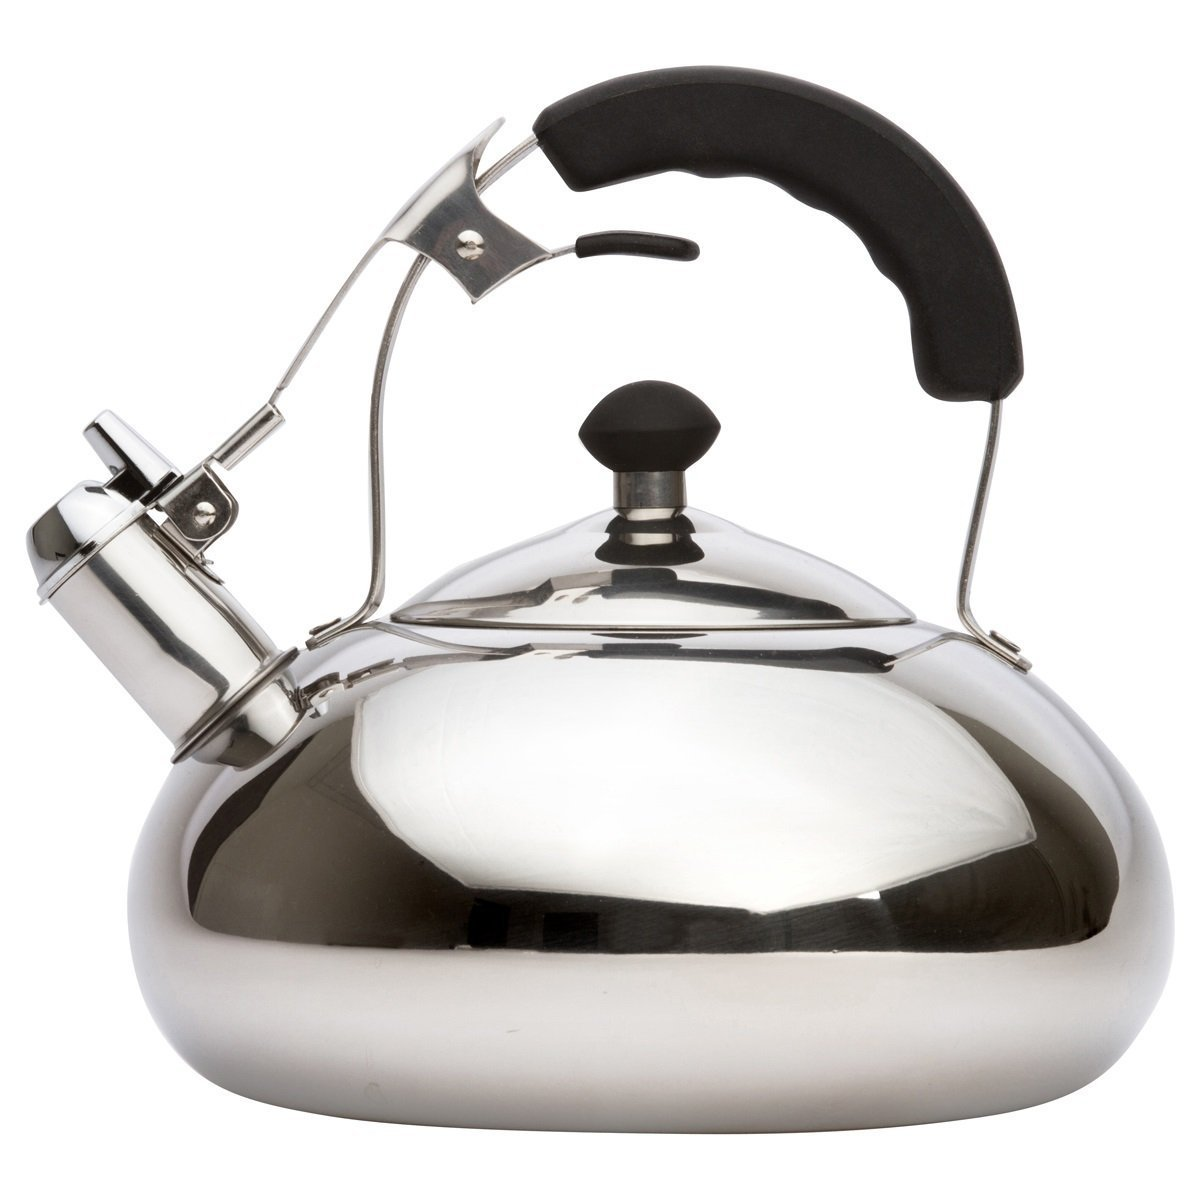 How to choose the best tea kettle for gas stove in